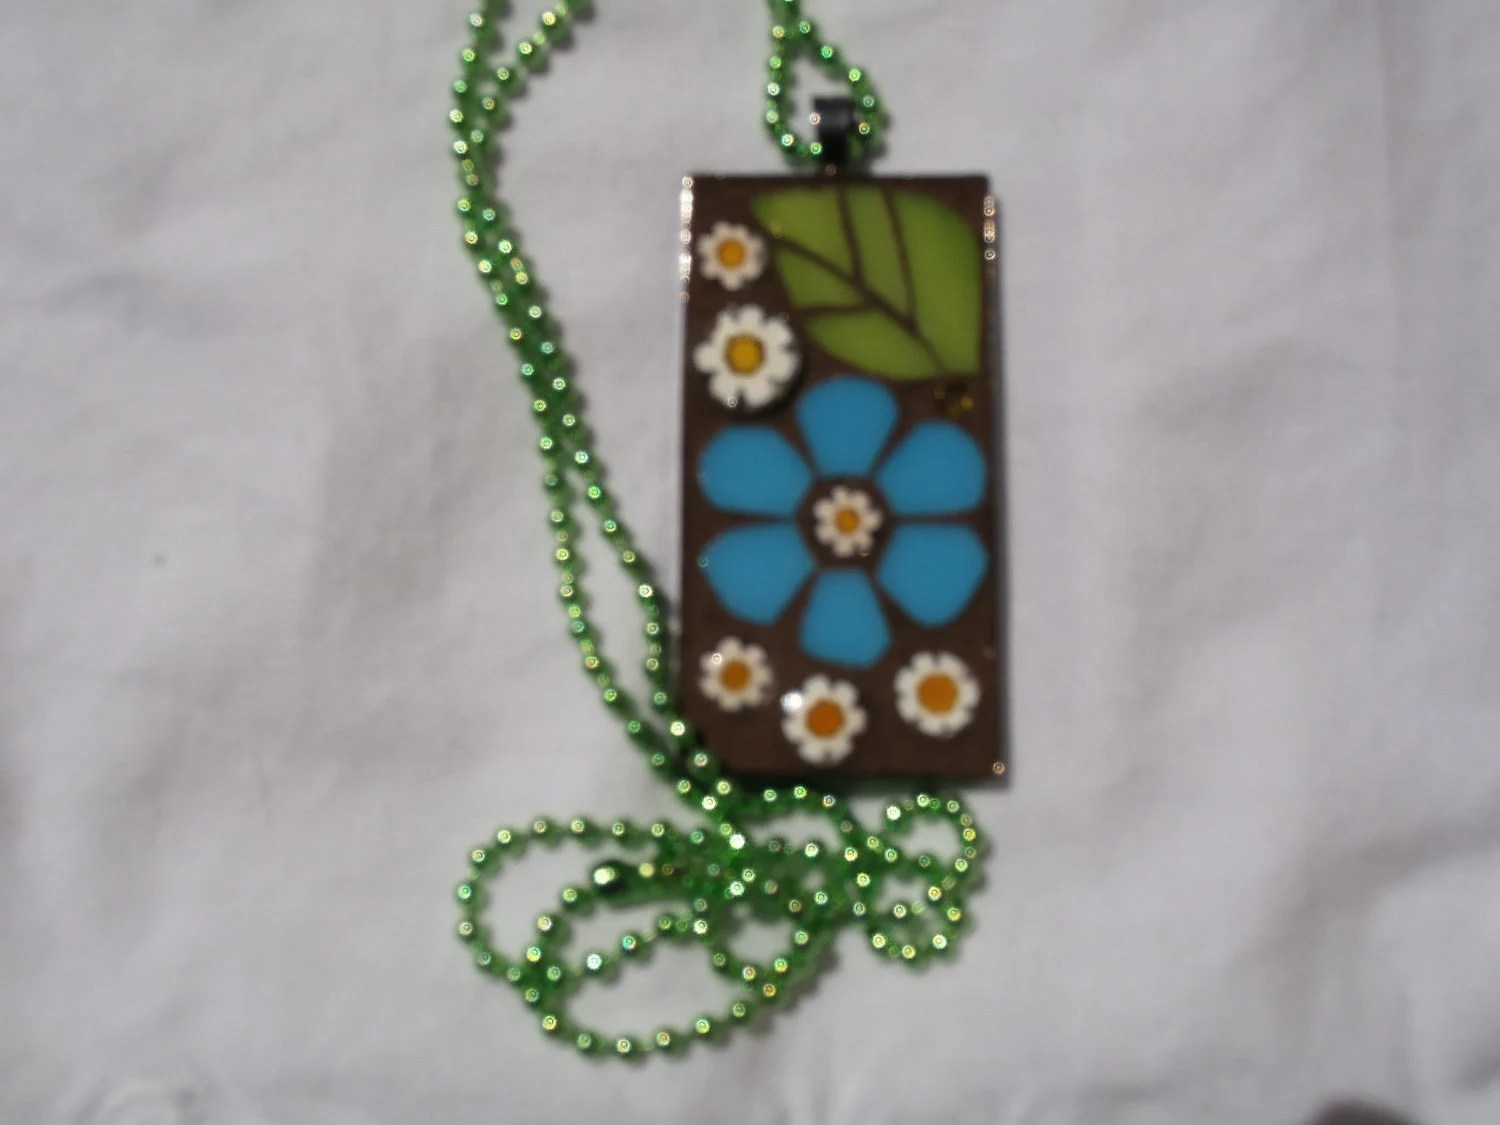 Spring Flower Pendant - Mosaic Sky Blue Flower Power Necklace